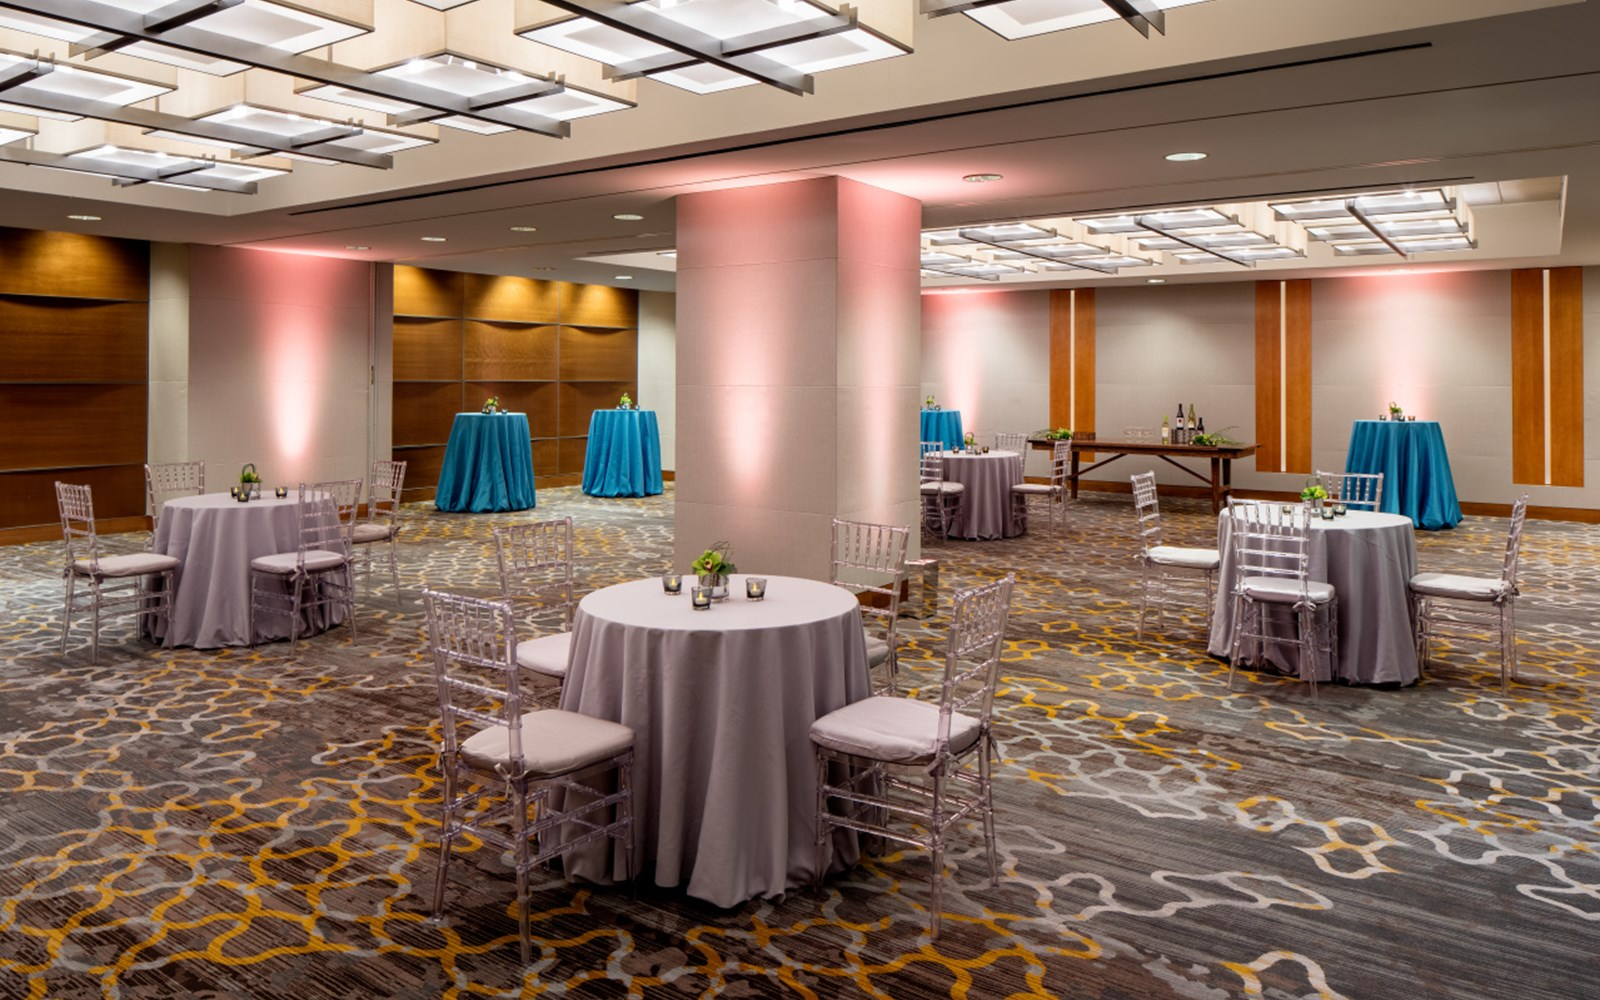 Meeting space in banquet setup